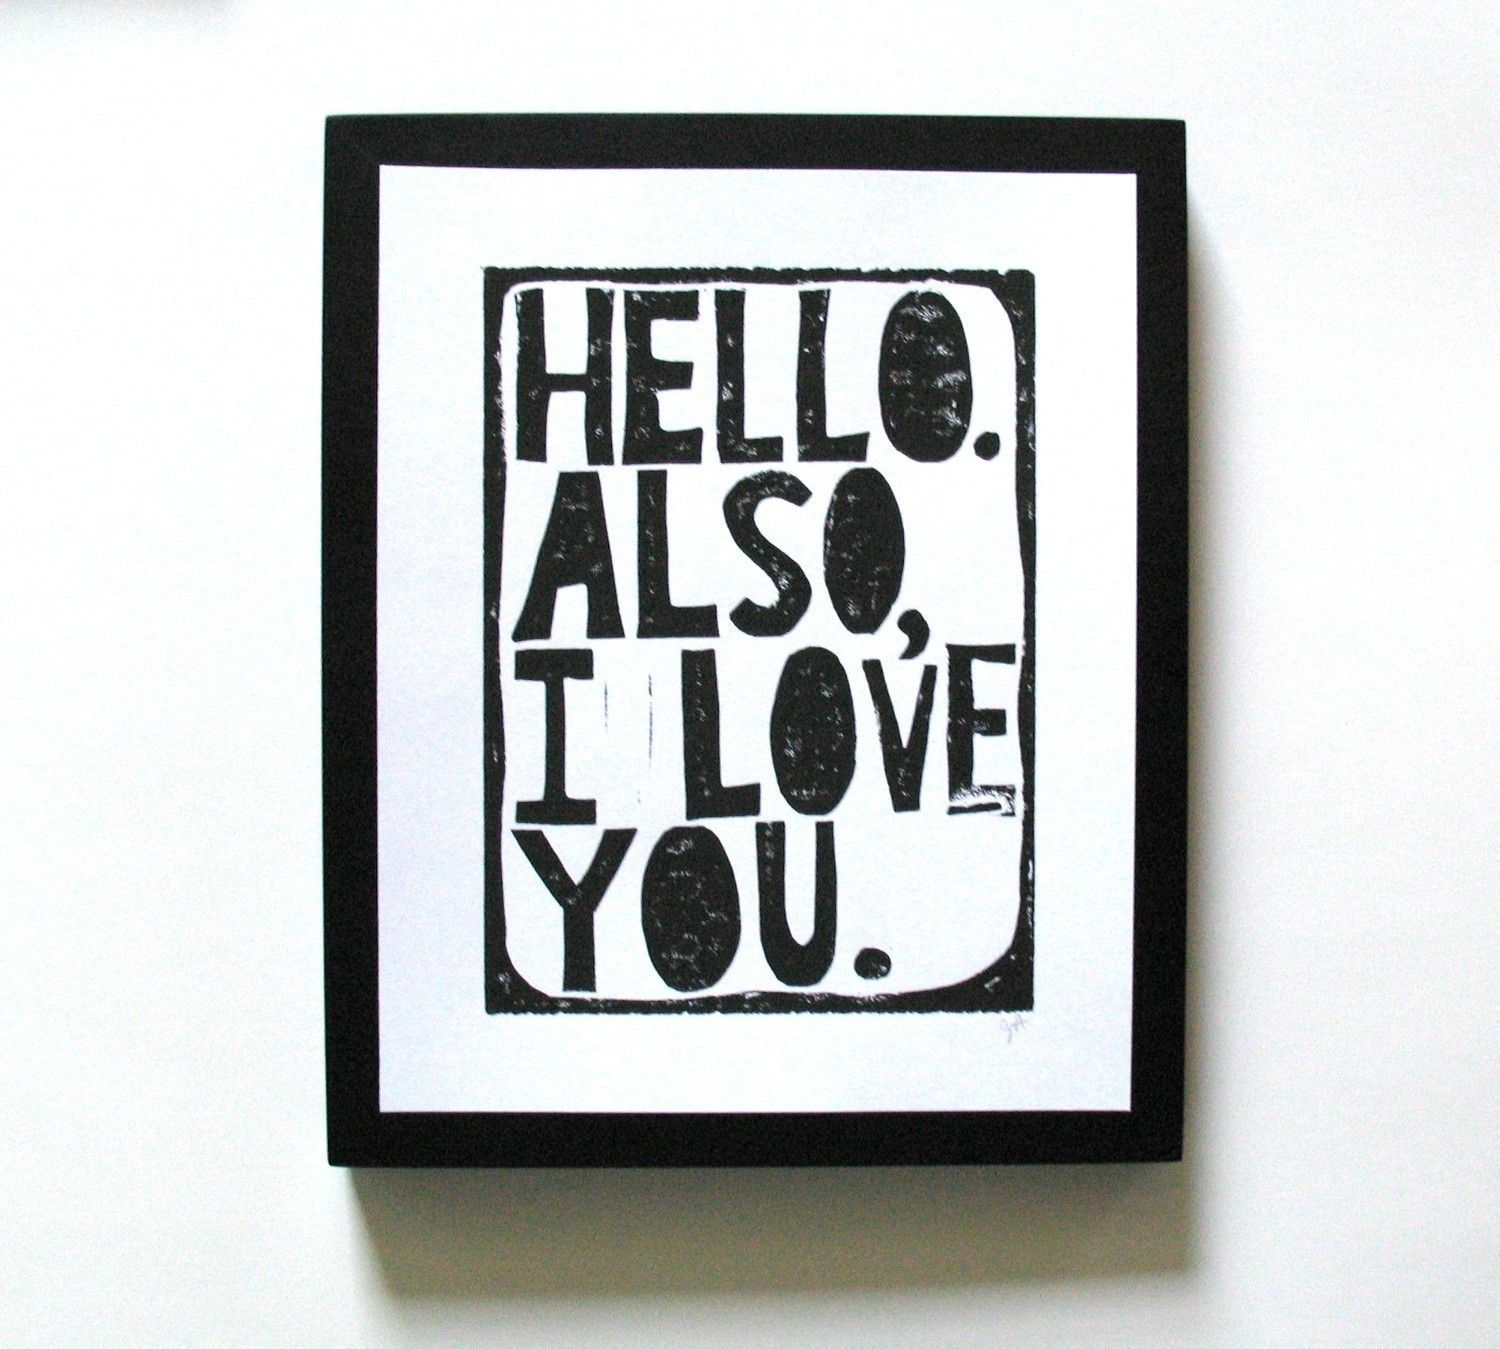 you are going to have a great day GREY typography letterpress linocut print POSTER